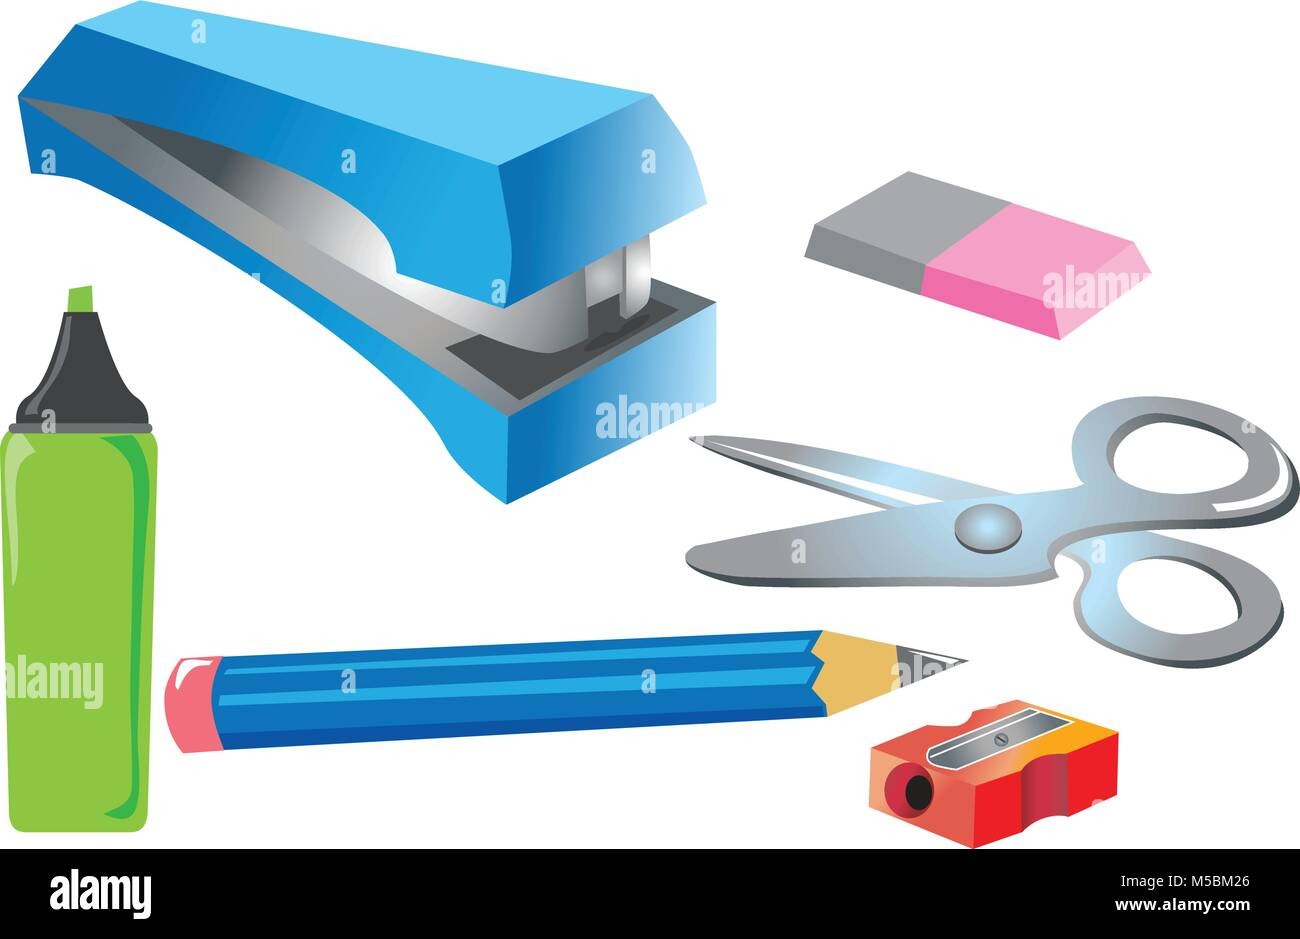 A cartoon illustration of crafting and art equipment - Stock Vector